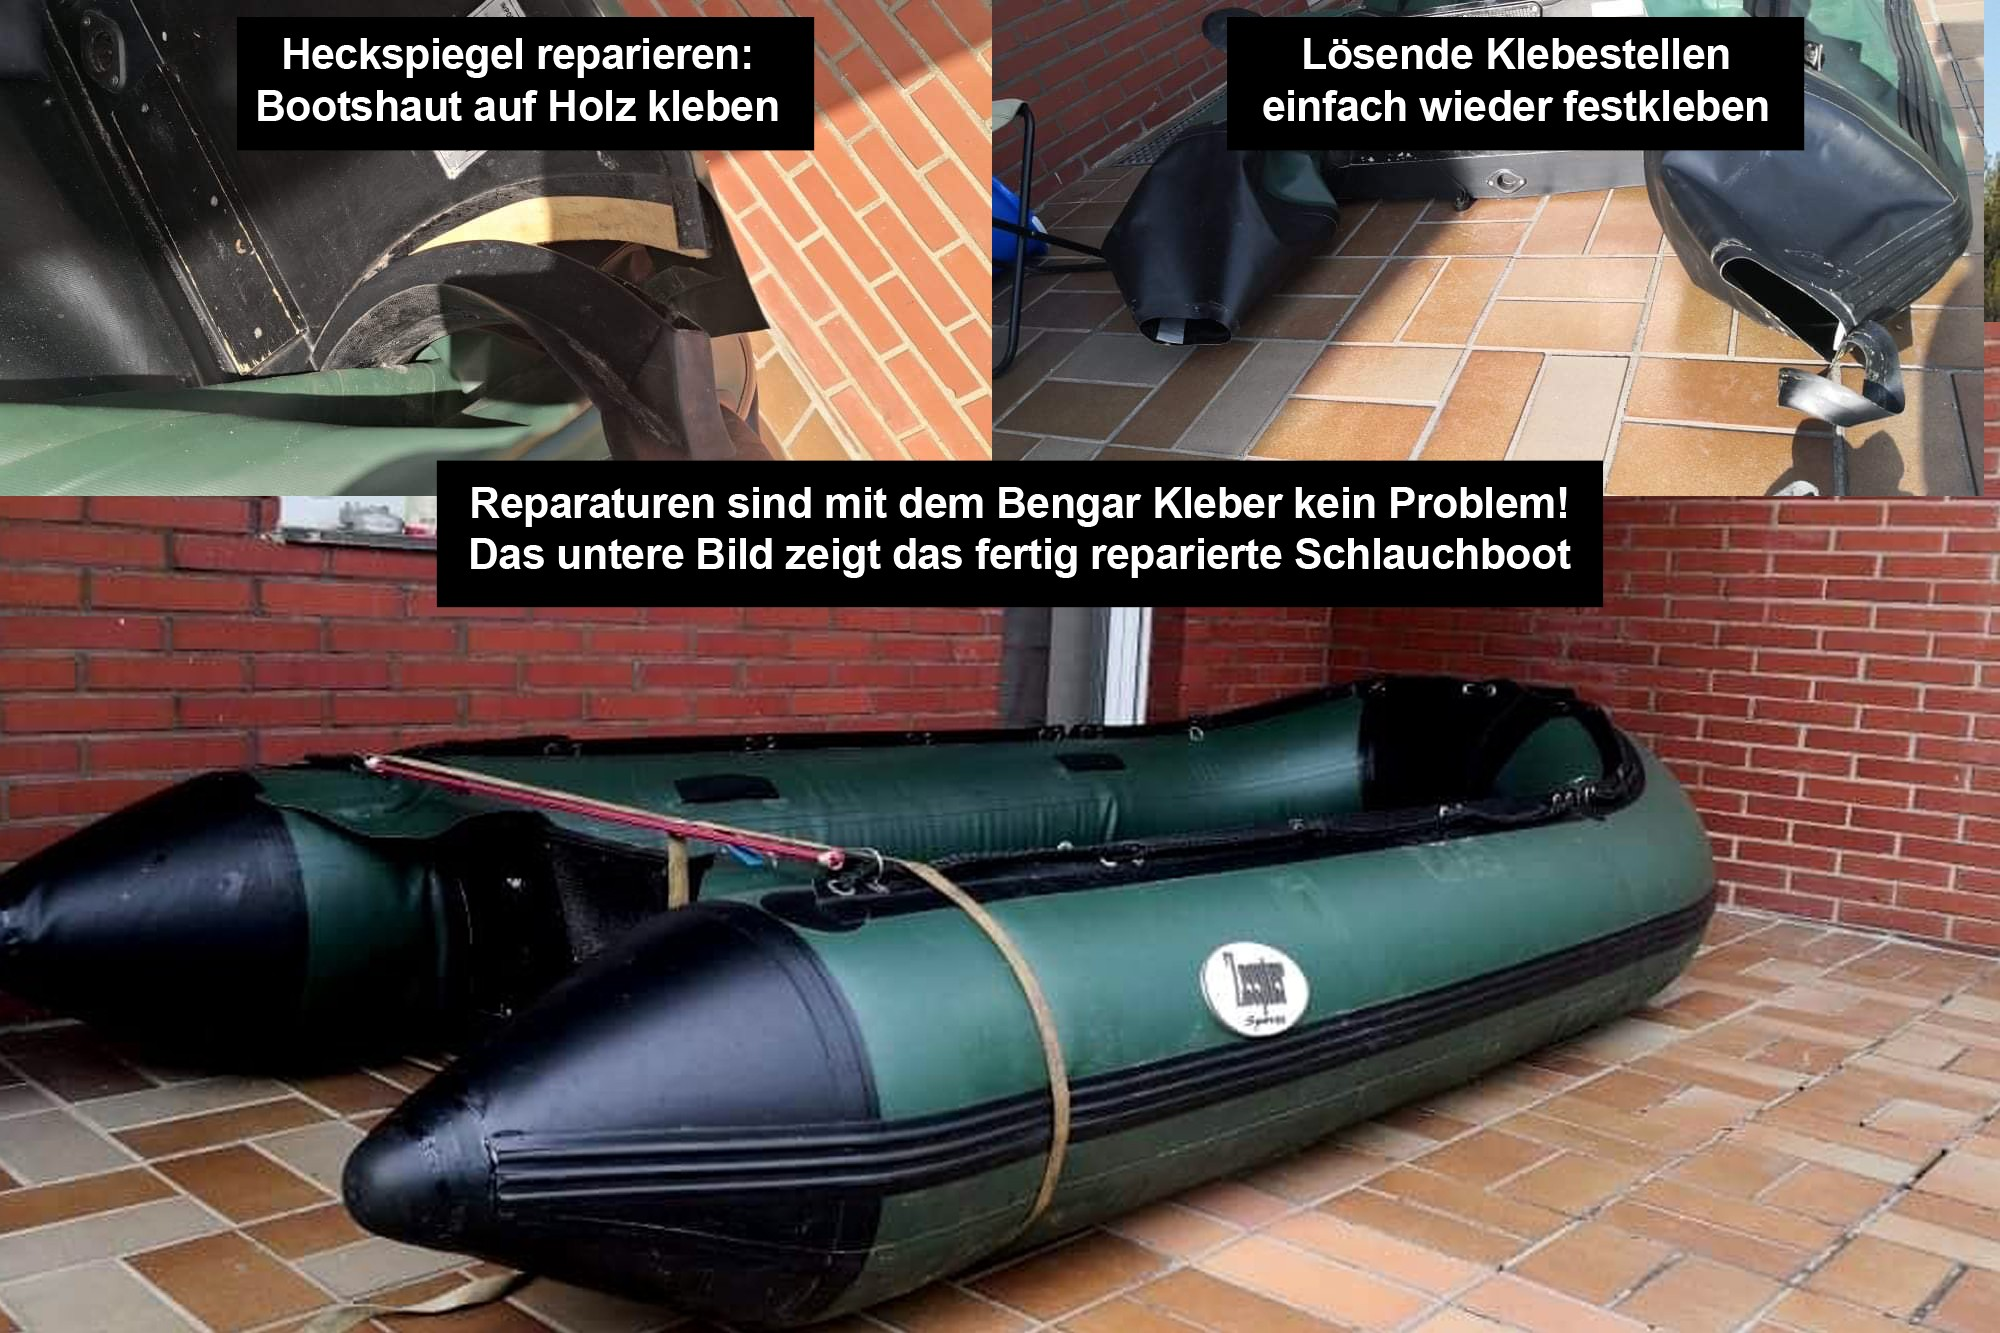 Boot Repair Kleber Ferse Supertop Rubber Boat Repair Kleber Schlauchboot Reparatur Patch Kleber Kit Schwimmbad PVC Puncture Adhesive Canoe